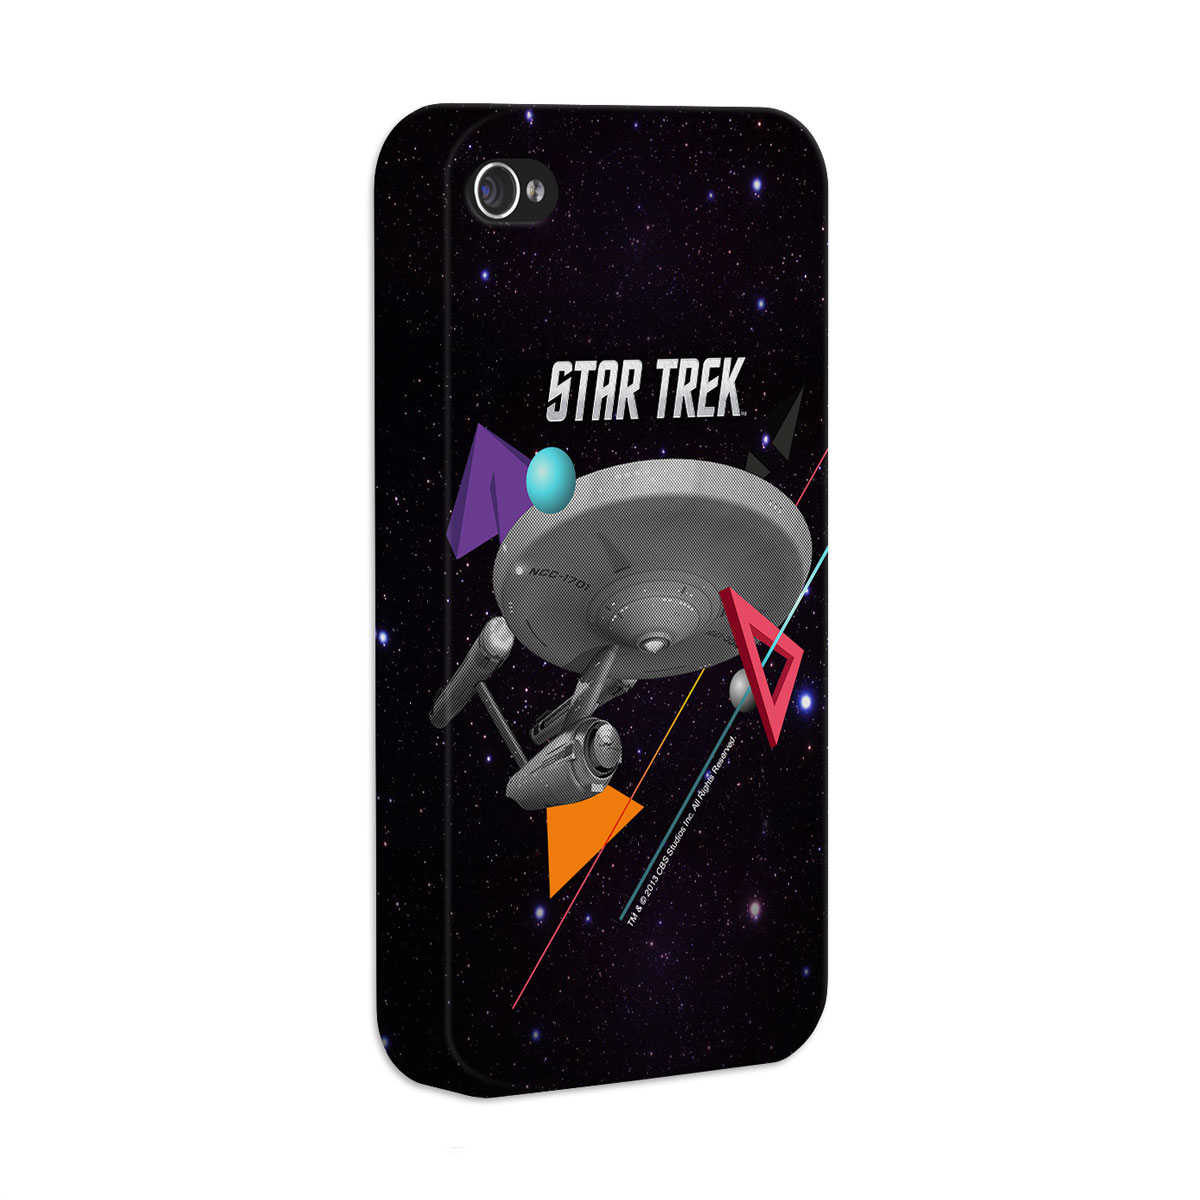 Capa de iPhone 4/4S Star Trek Enterprise